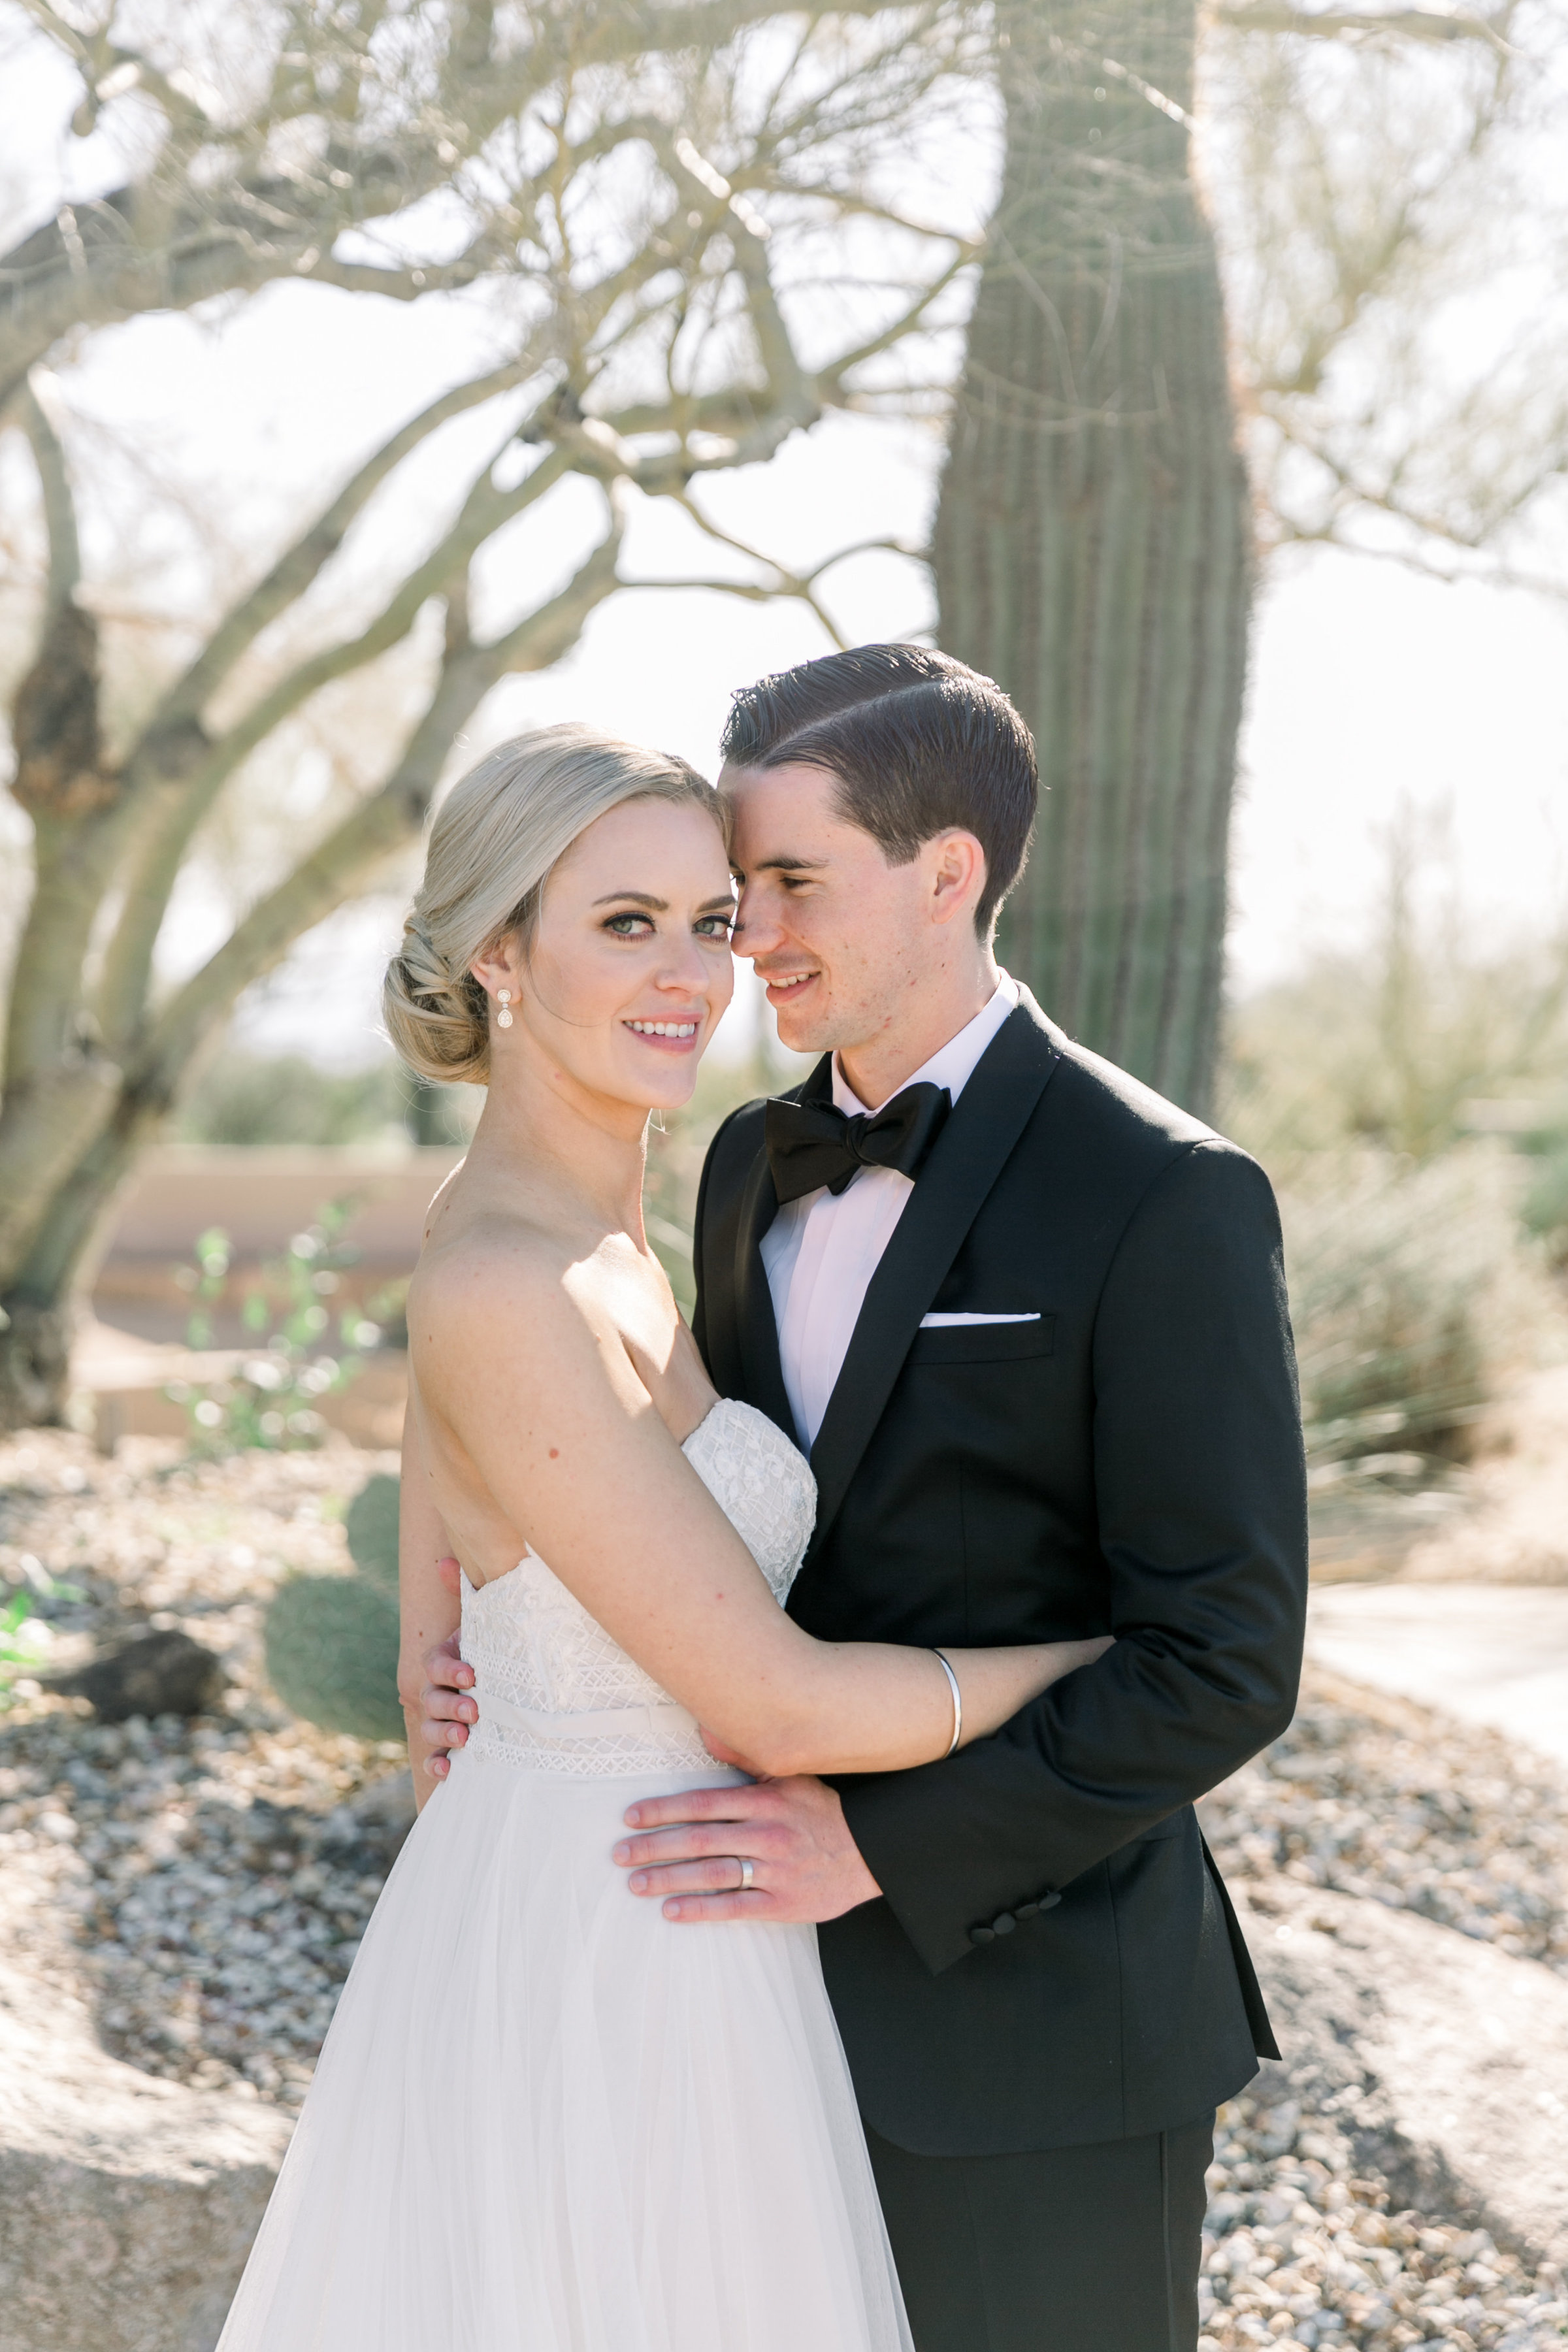 Karlie Colleen Photography - Arizona Wedding at The Troon Scottsdale Country Club - Paige & Shane -205